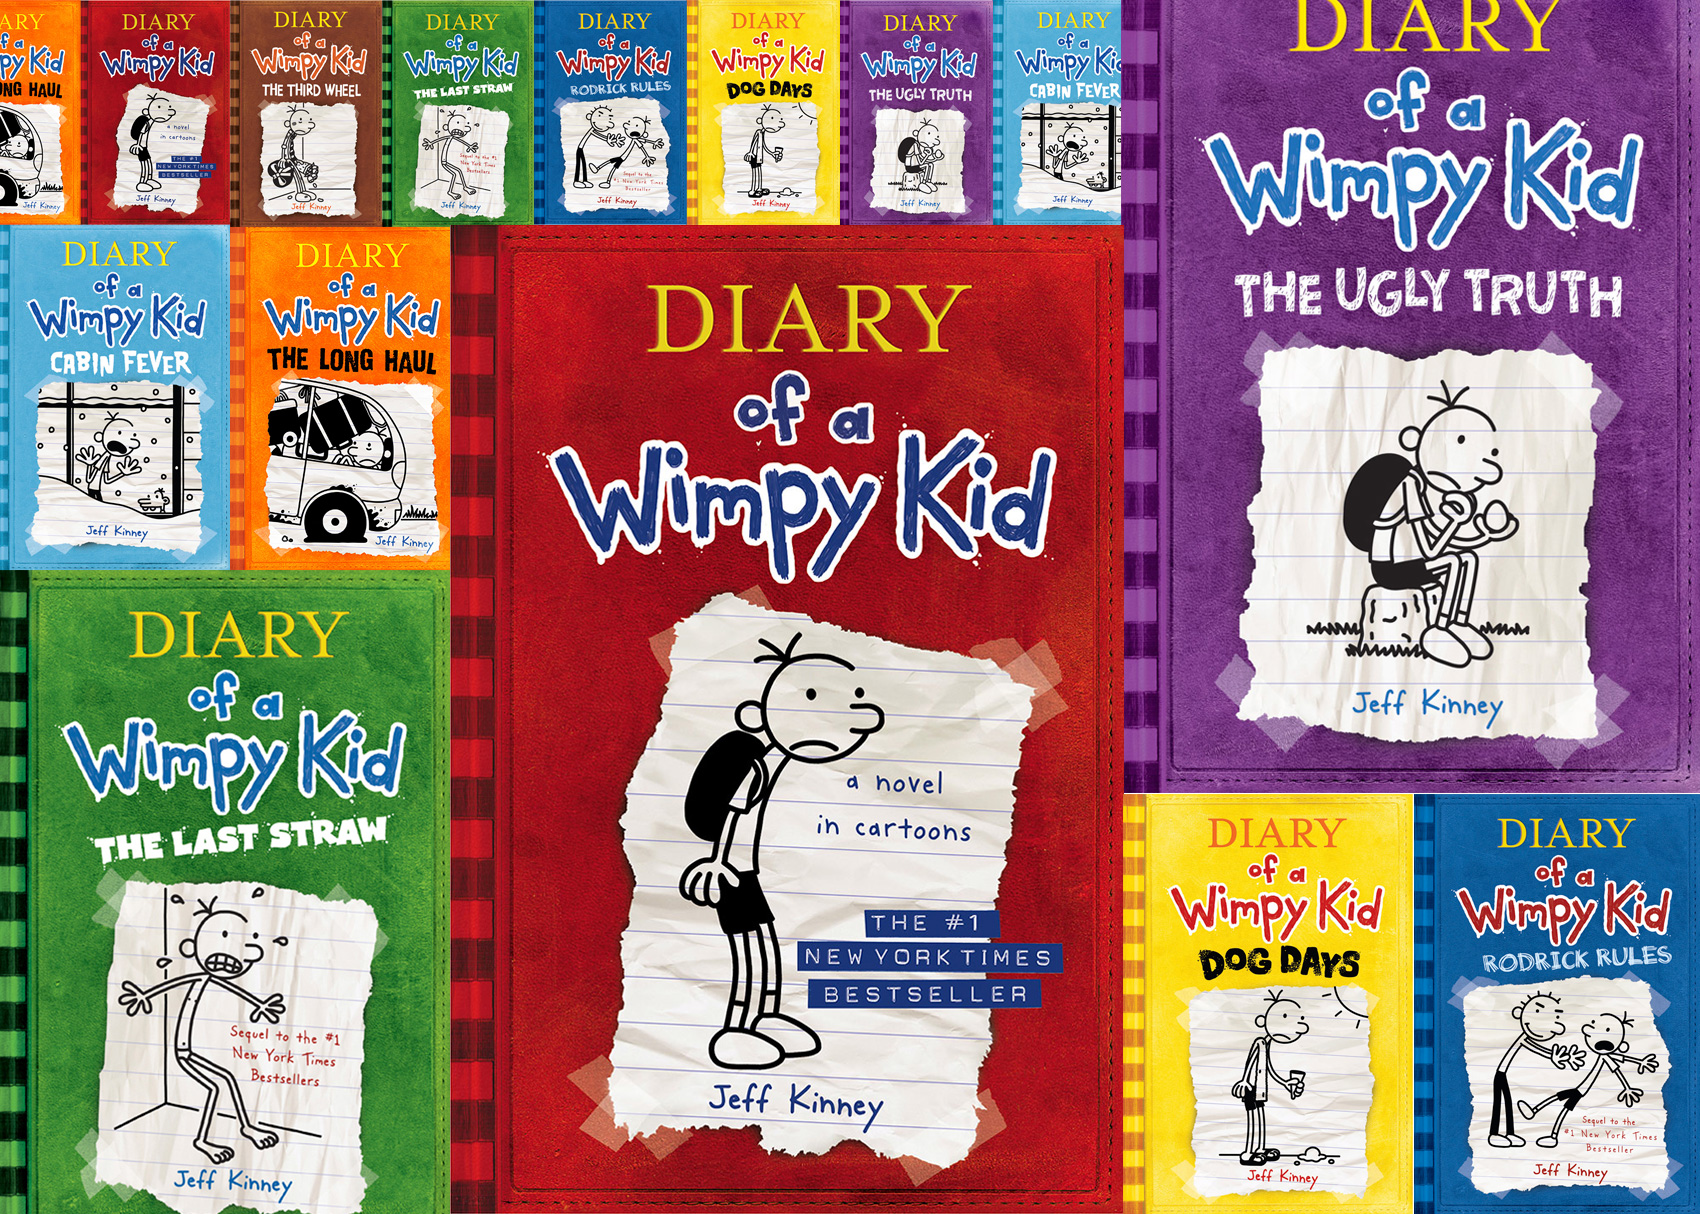 Mom S Cheat Sheet Diary Of A Wimpy Kid Brightly Kid Diary Wimpy